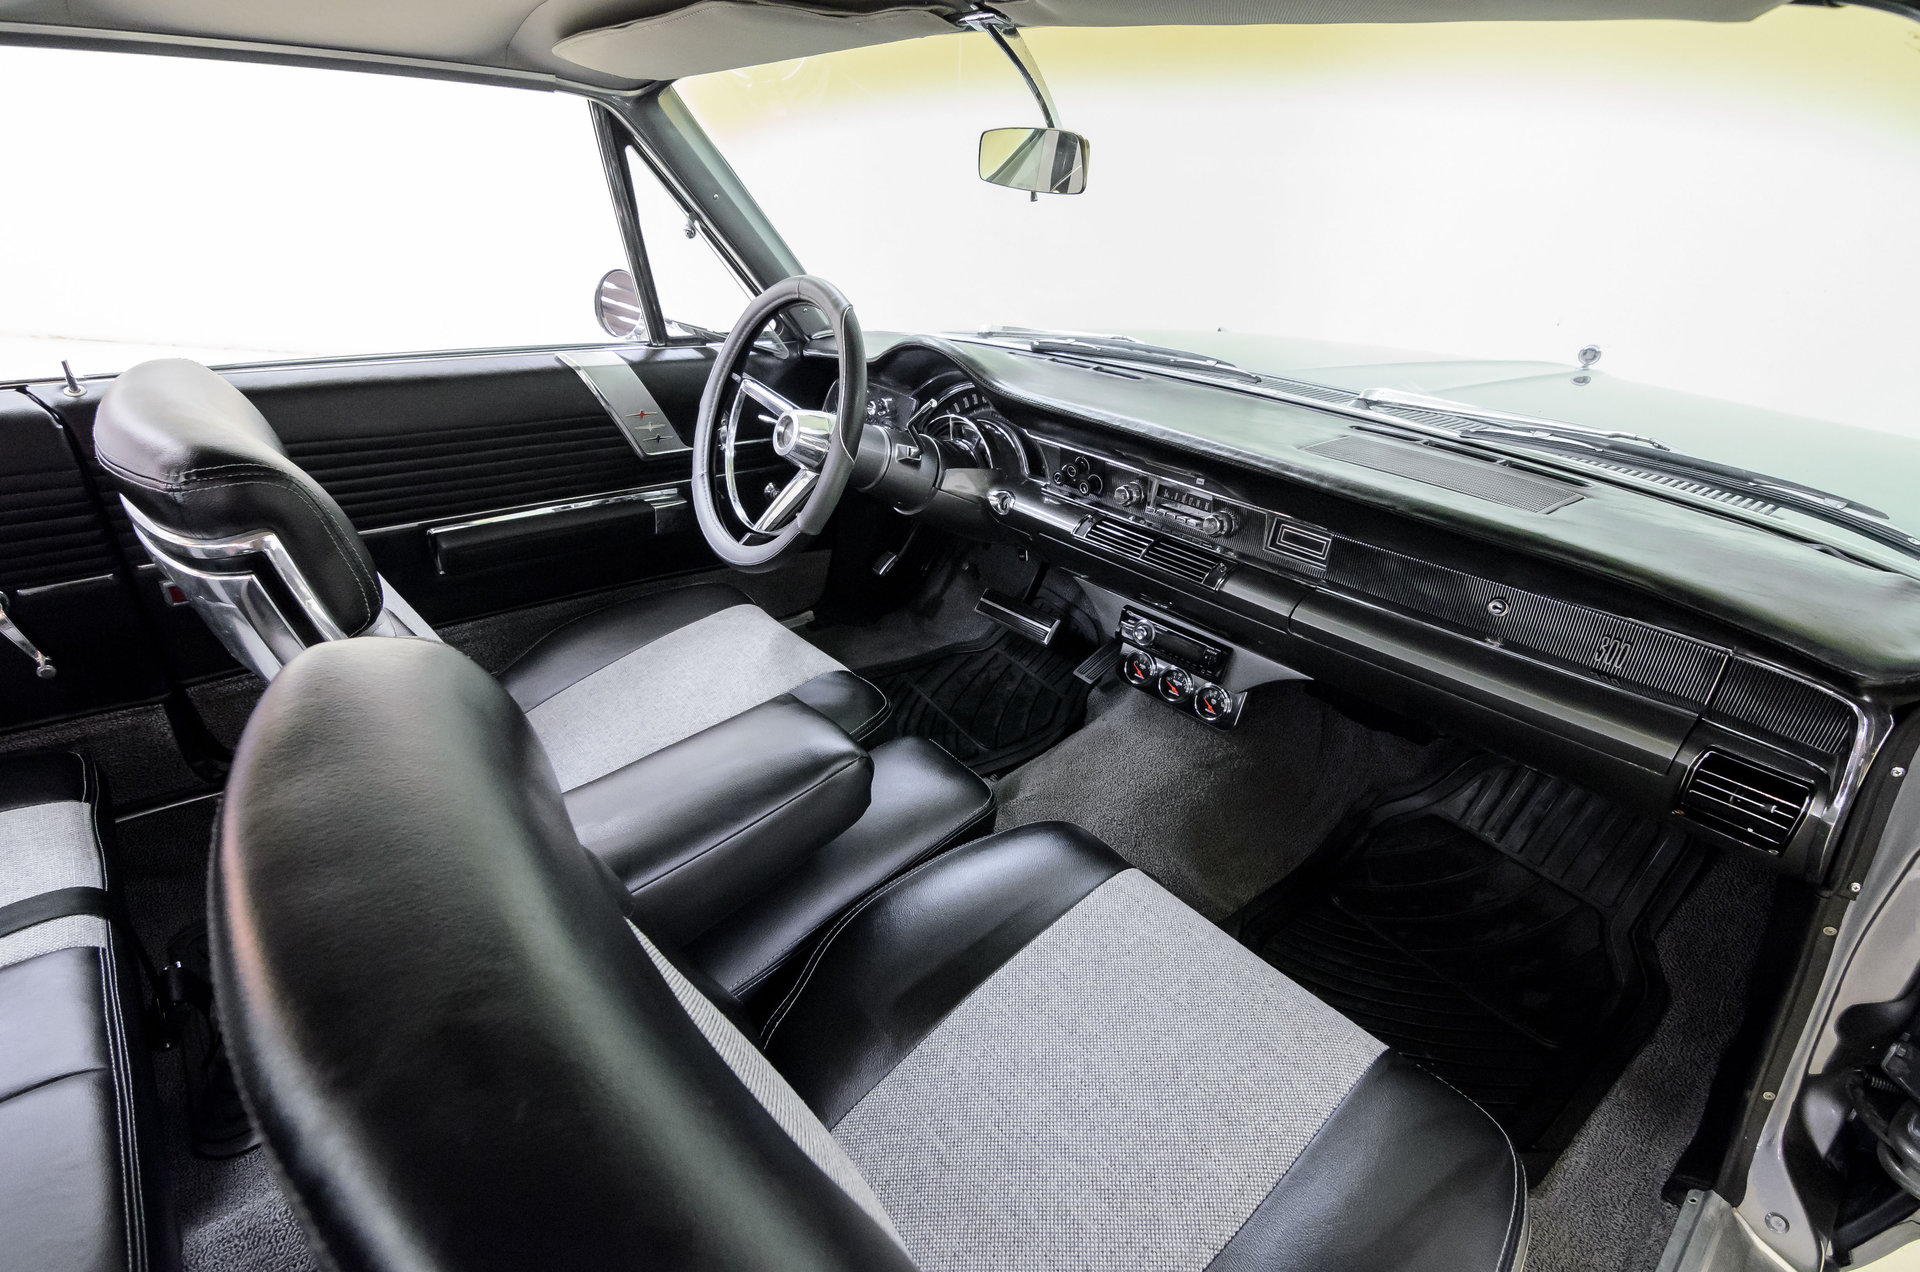 9531d4a91282_hd_1966-chrysler-300 Great Description About 1955 Chrysler 300 for Sale with Inspiring Images Cars Review